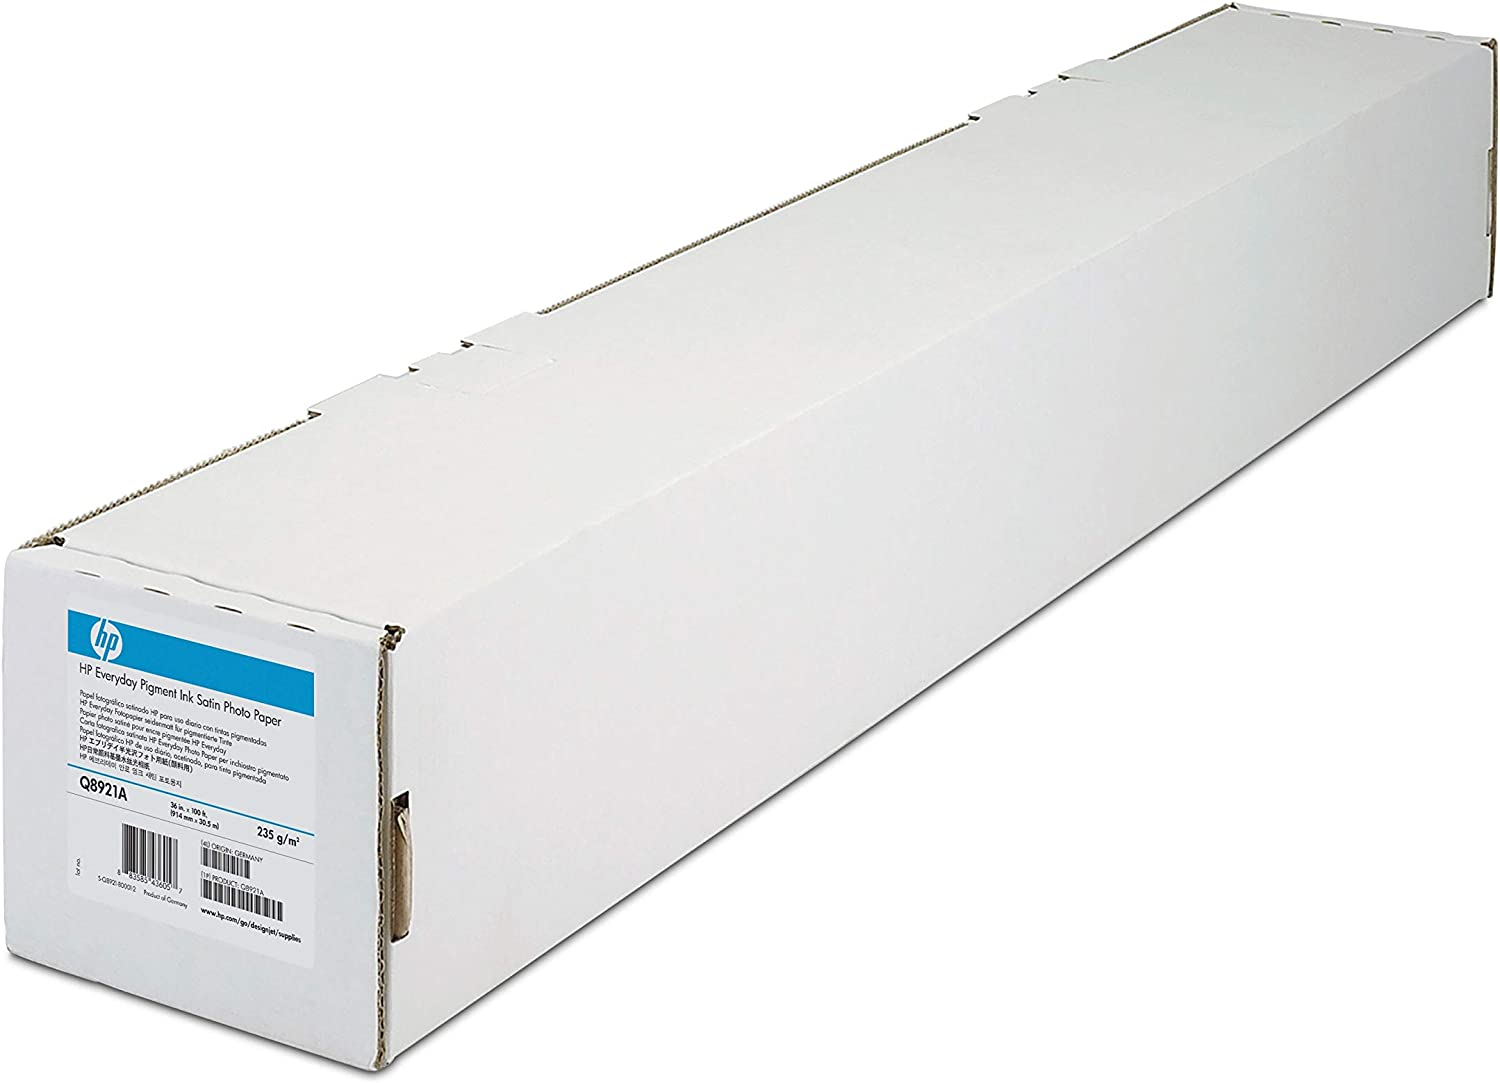 HP Universal Satin Photo Paper, 7.4 ml, 89 Bright (36 x 100' Roll) - TAA Compliance